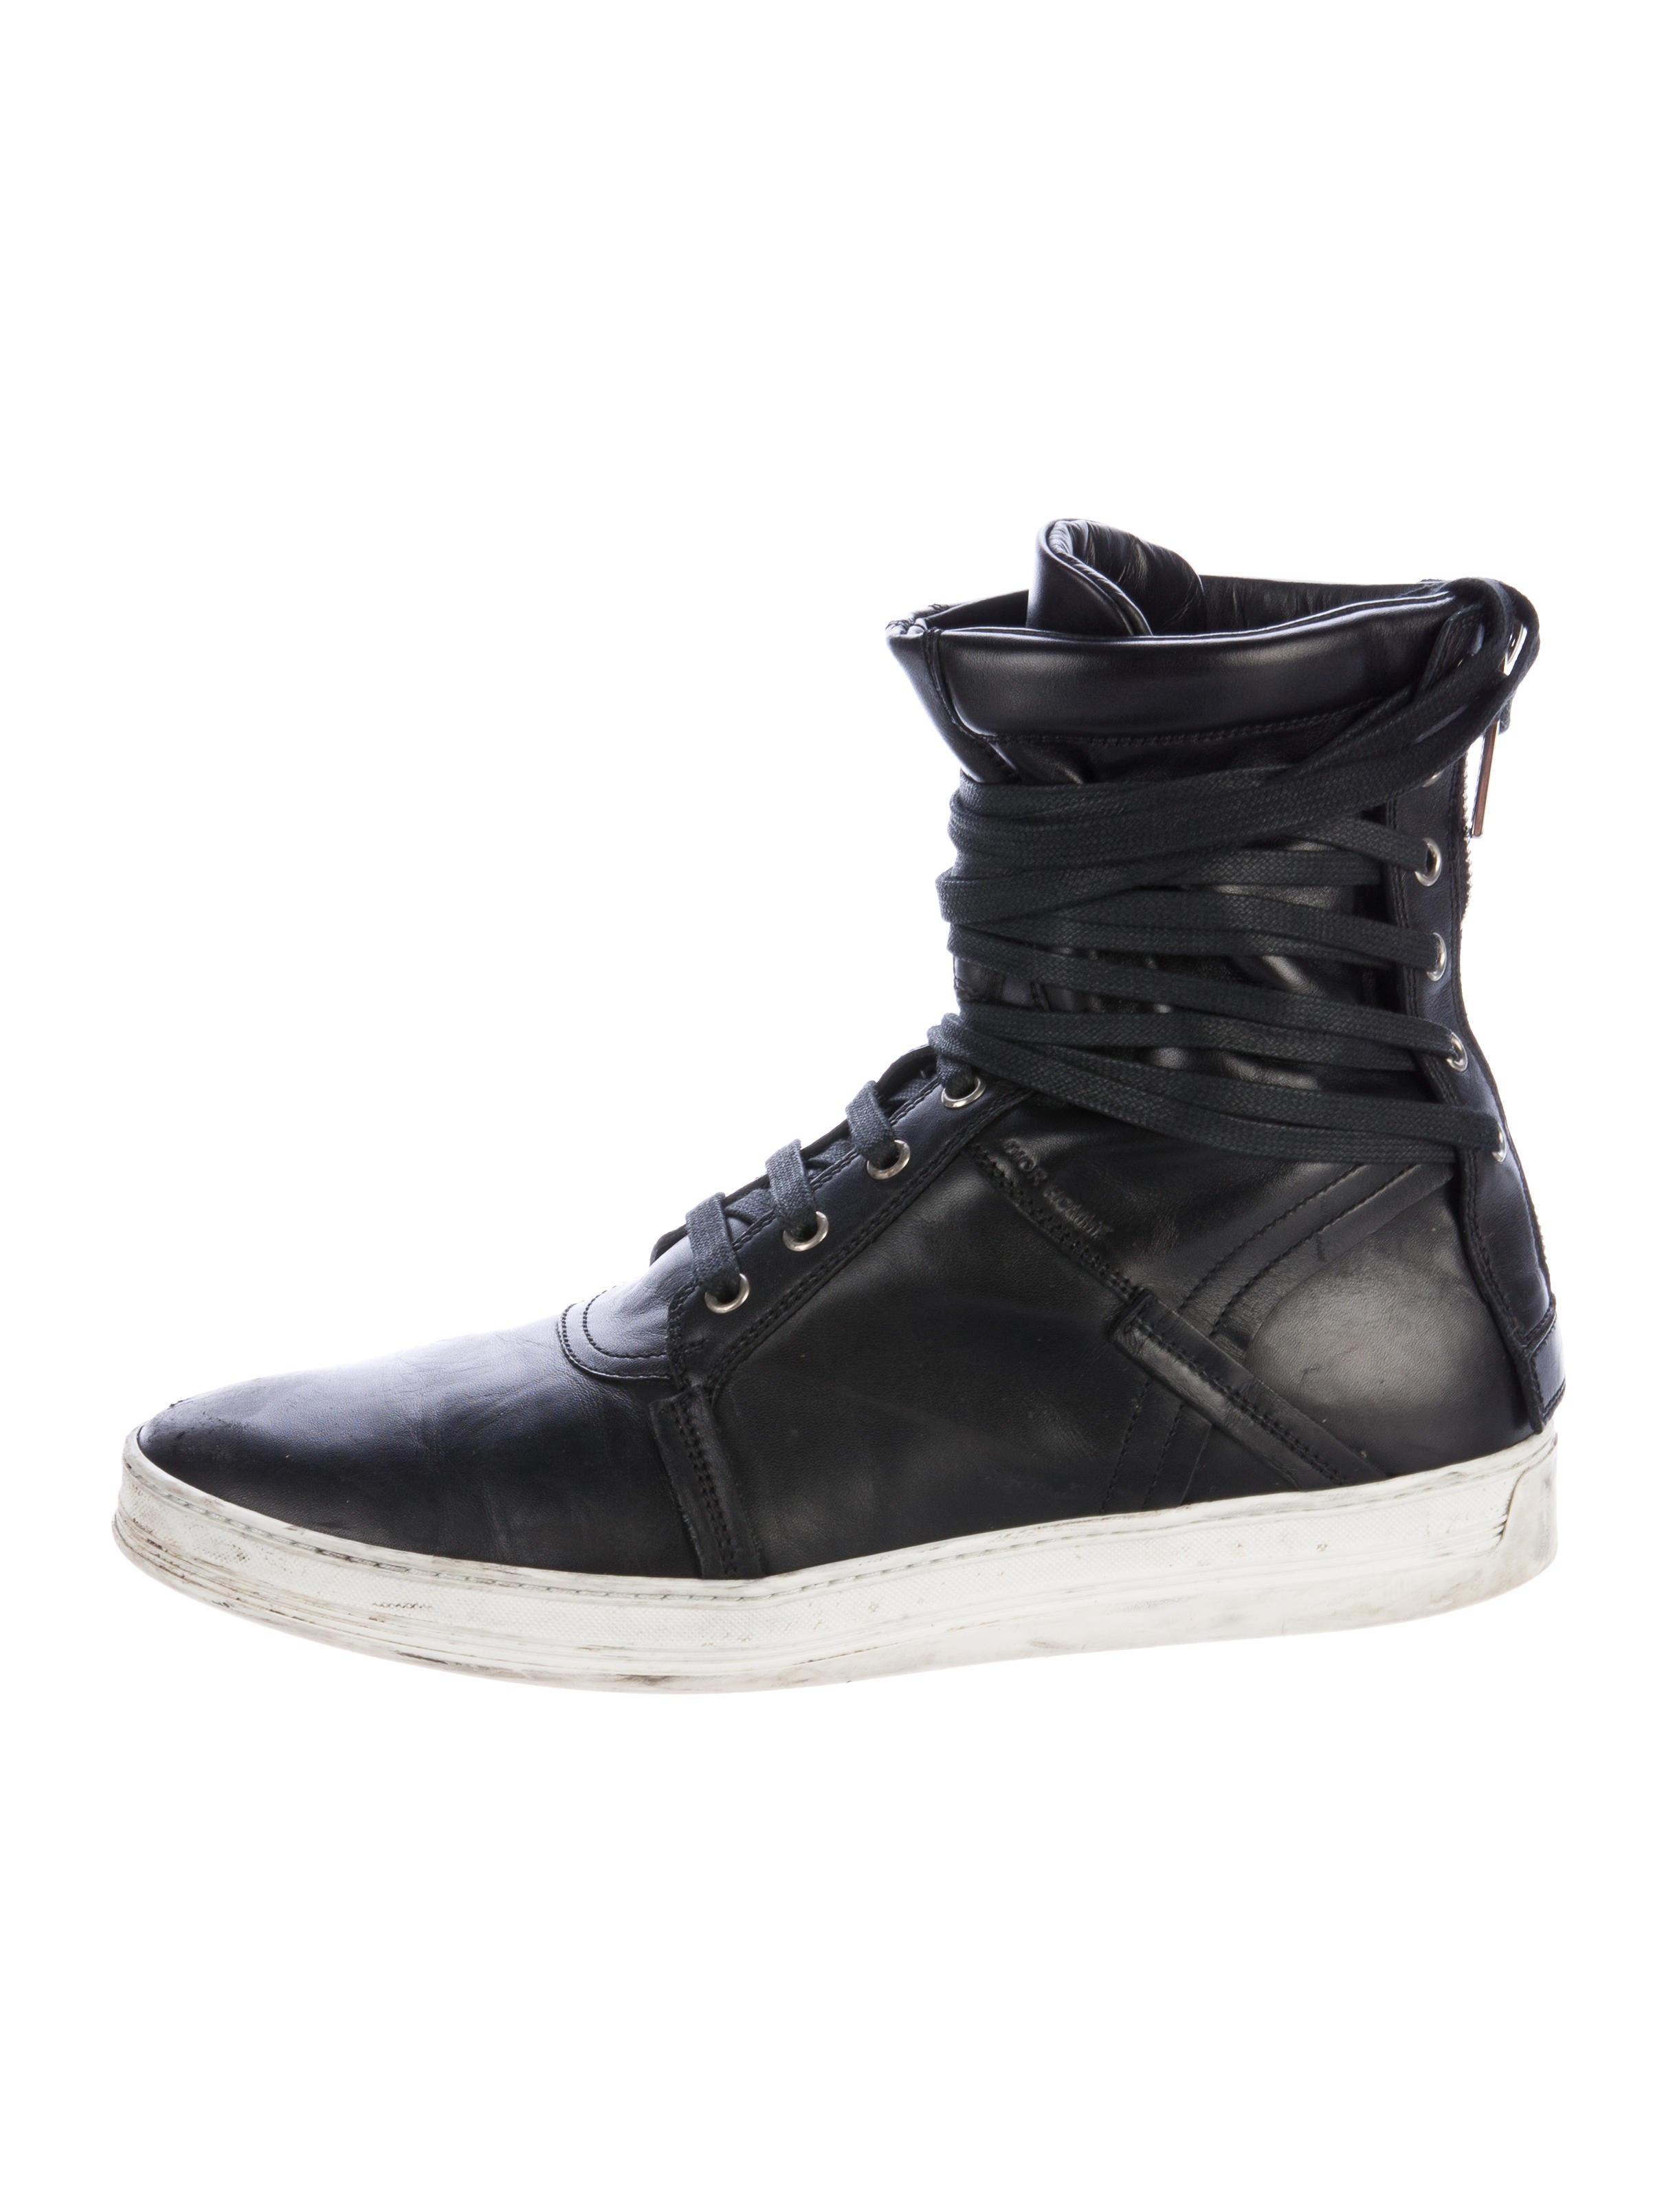 Dior Homme Leather High-Top Sneakers - 293.4KB